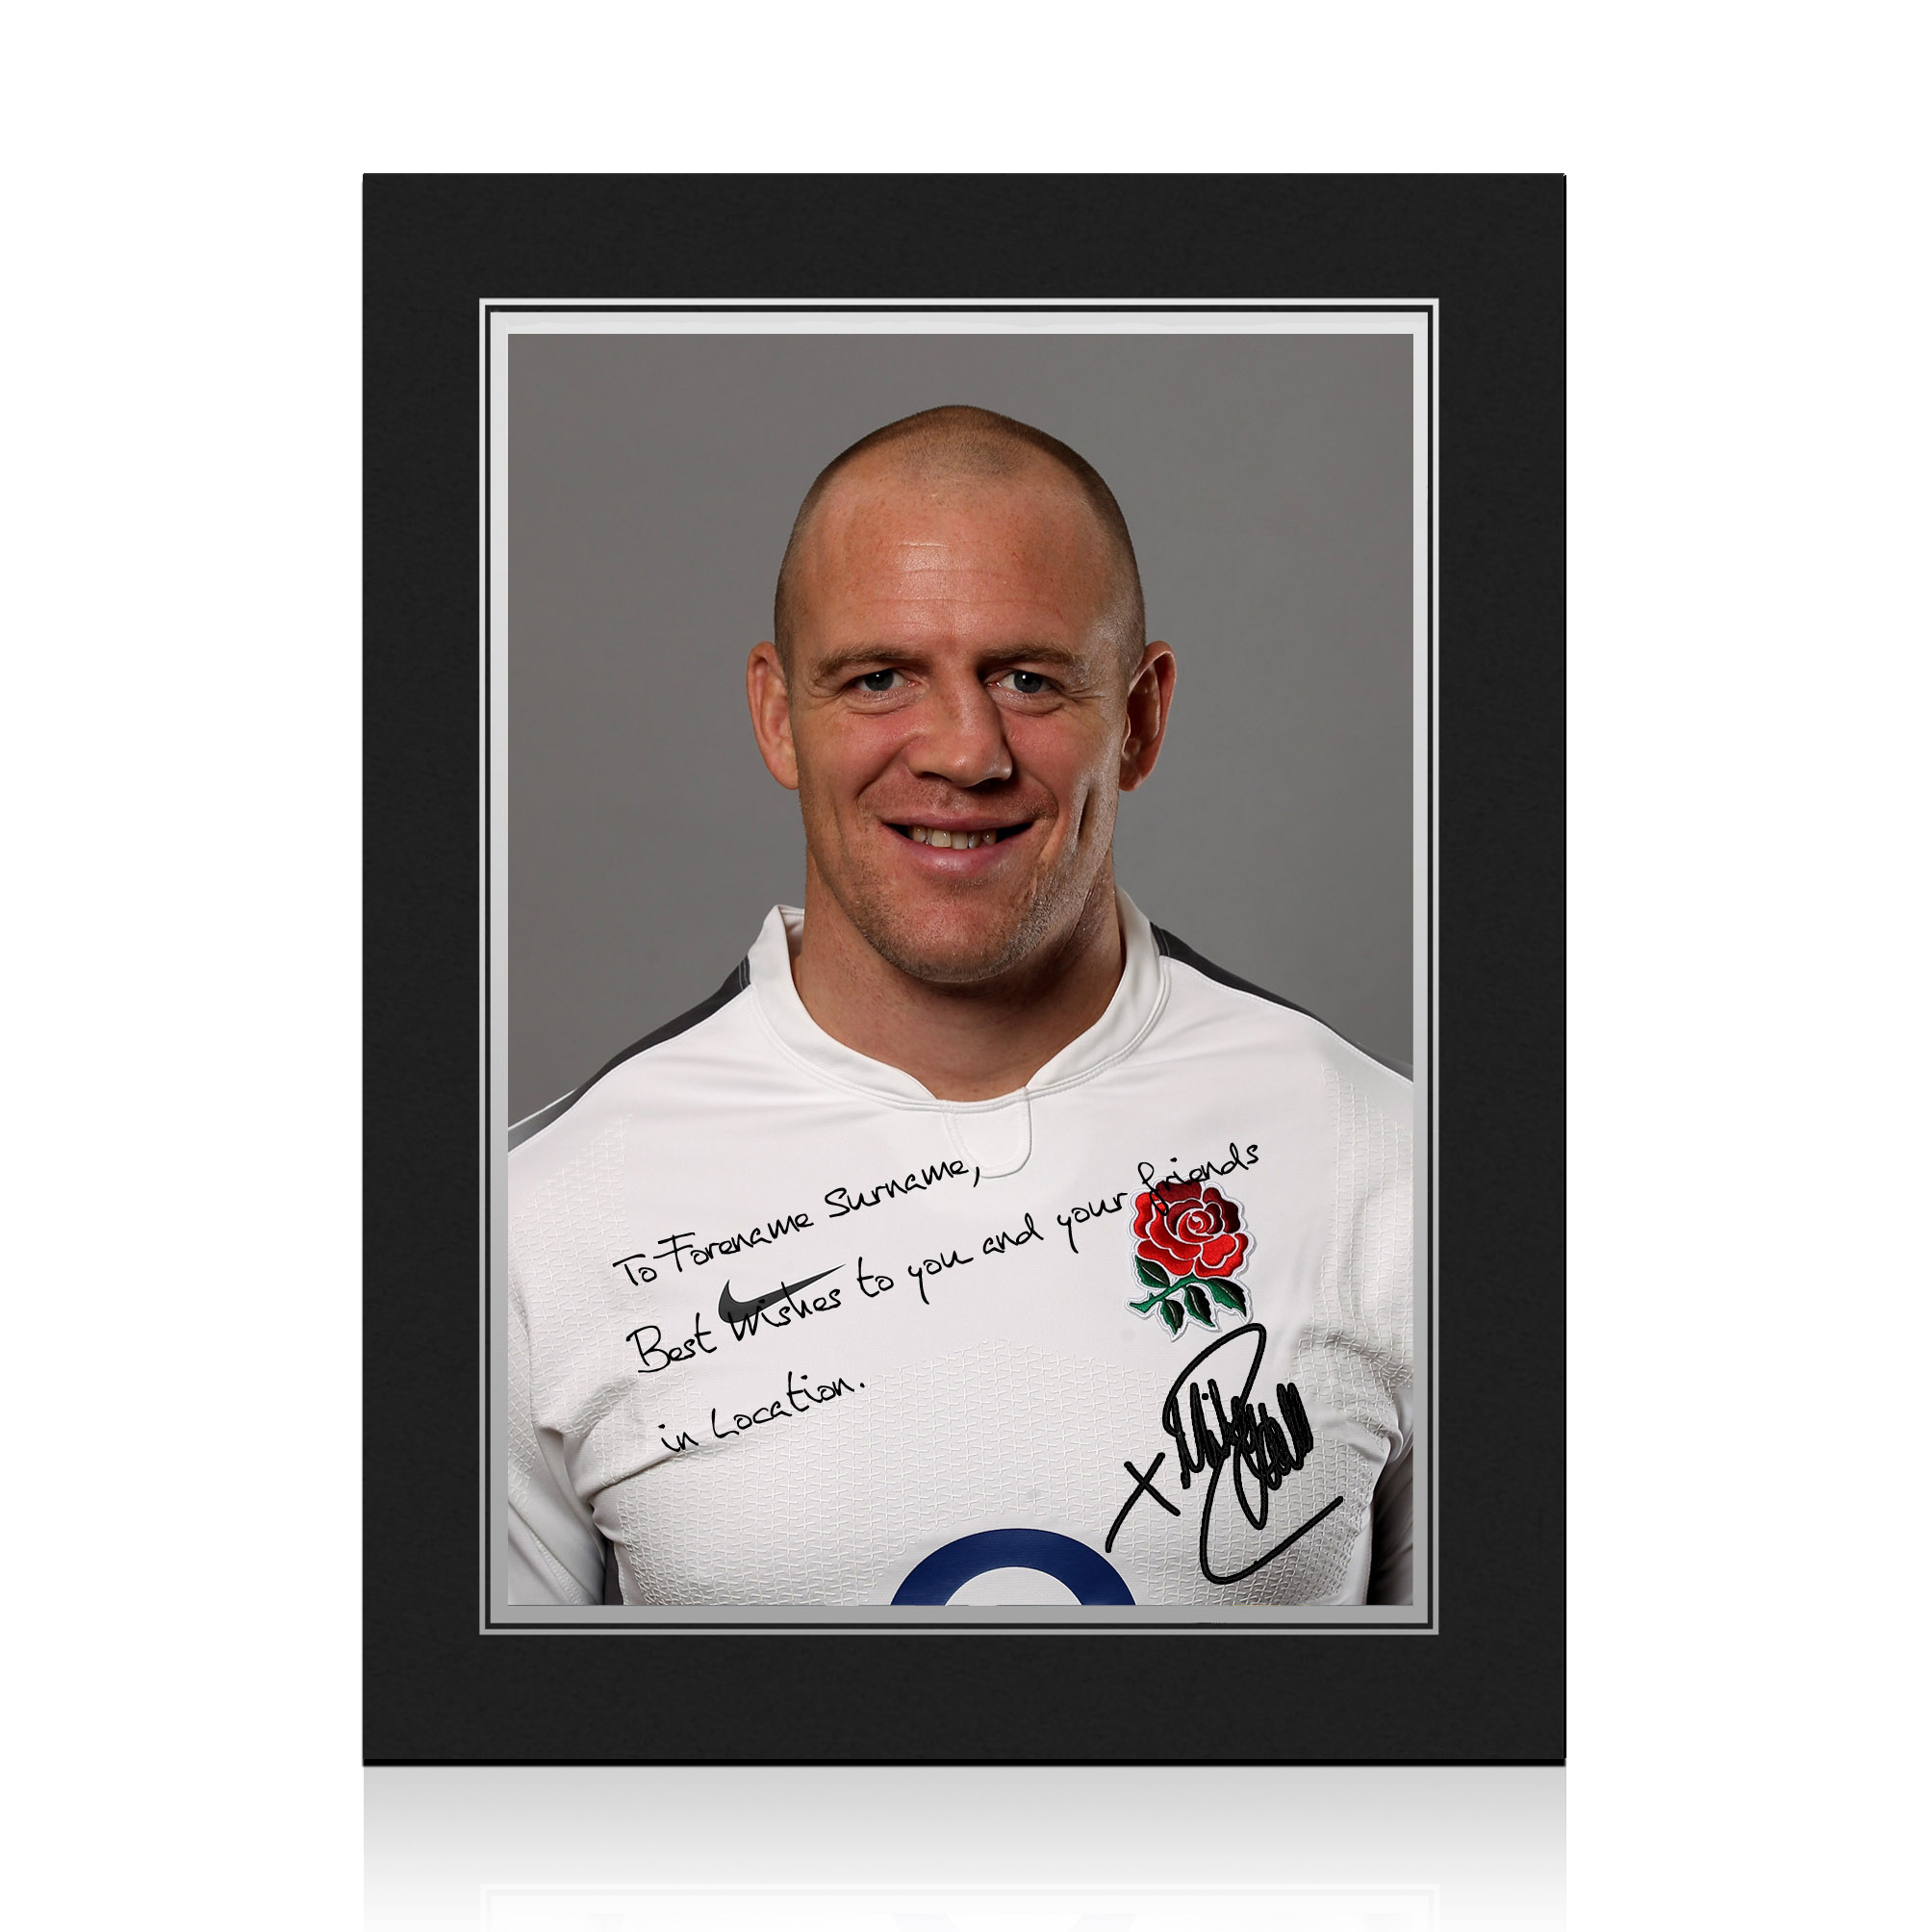 England Rugby Personalised Signature Print in Presentation Folder - Tindall